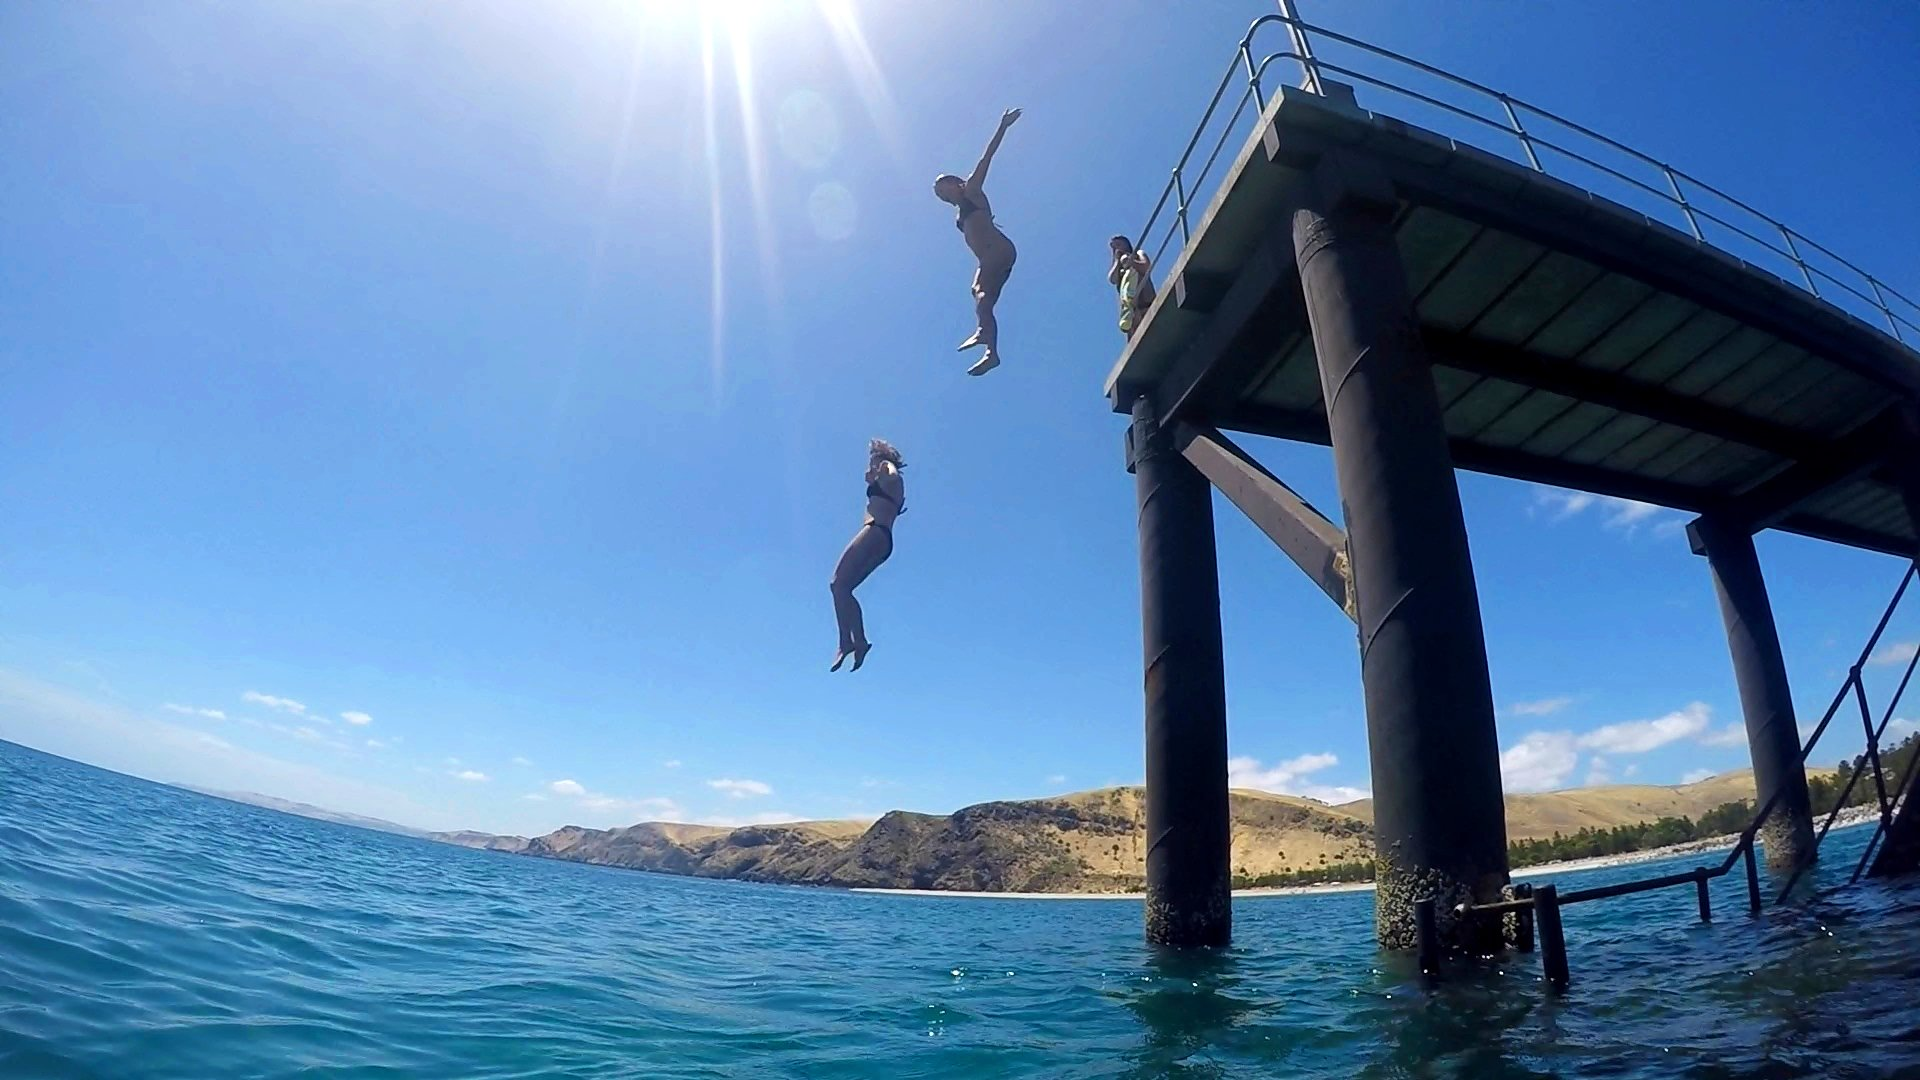 17 Easy Ways to Save Money on Your Next Trip - Jetty Jumping, Rapid Bay, South Australia